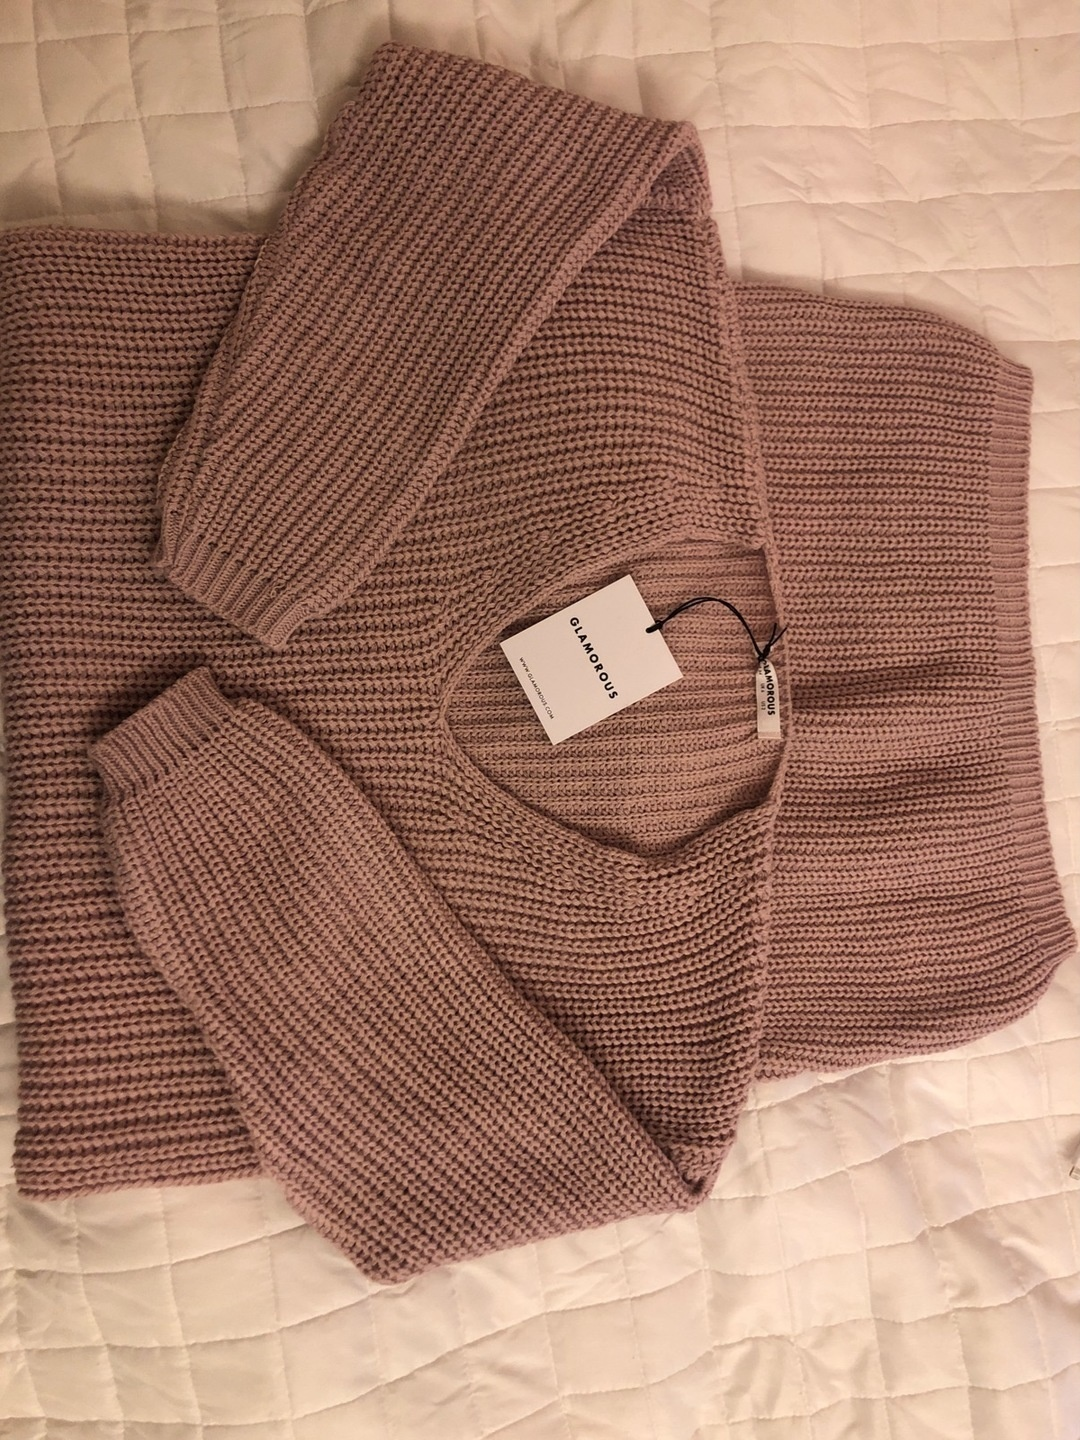 Women's jumpers & cardigans - GLAMOROUS photo 1